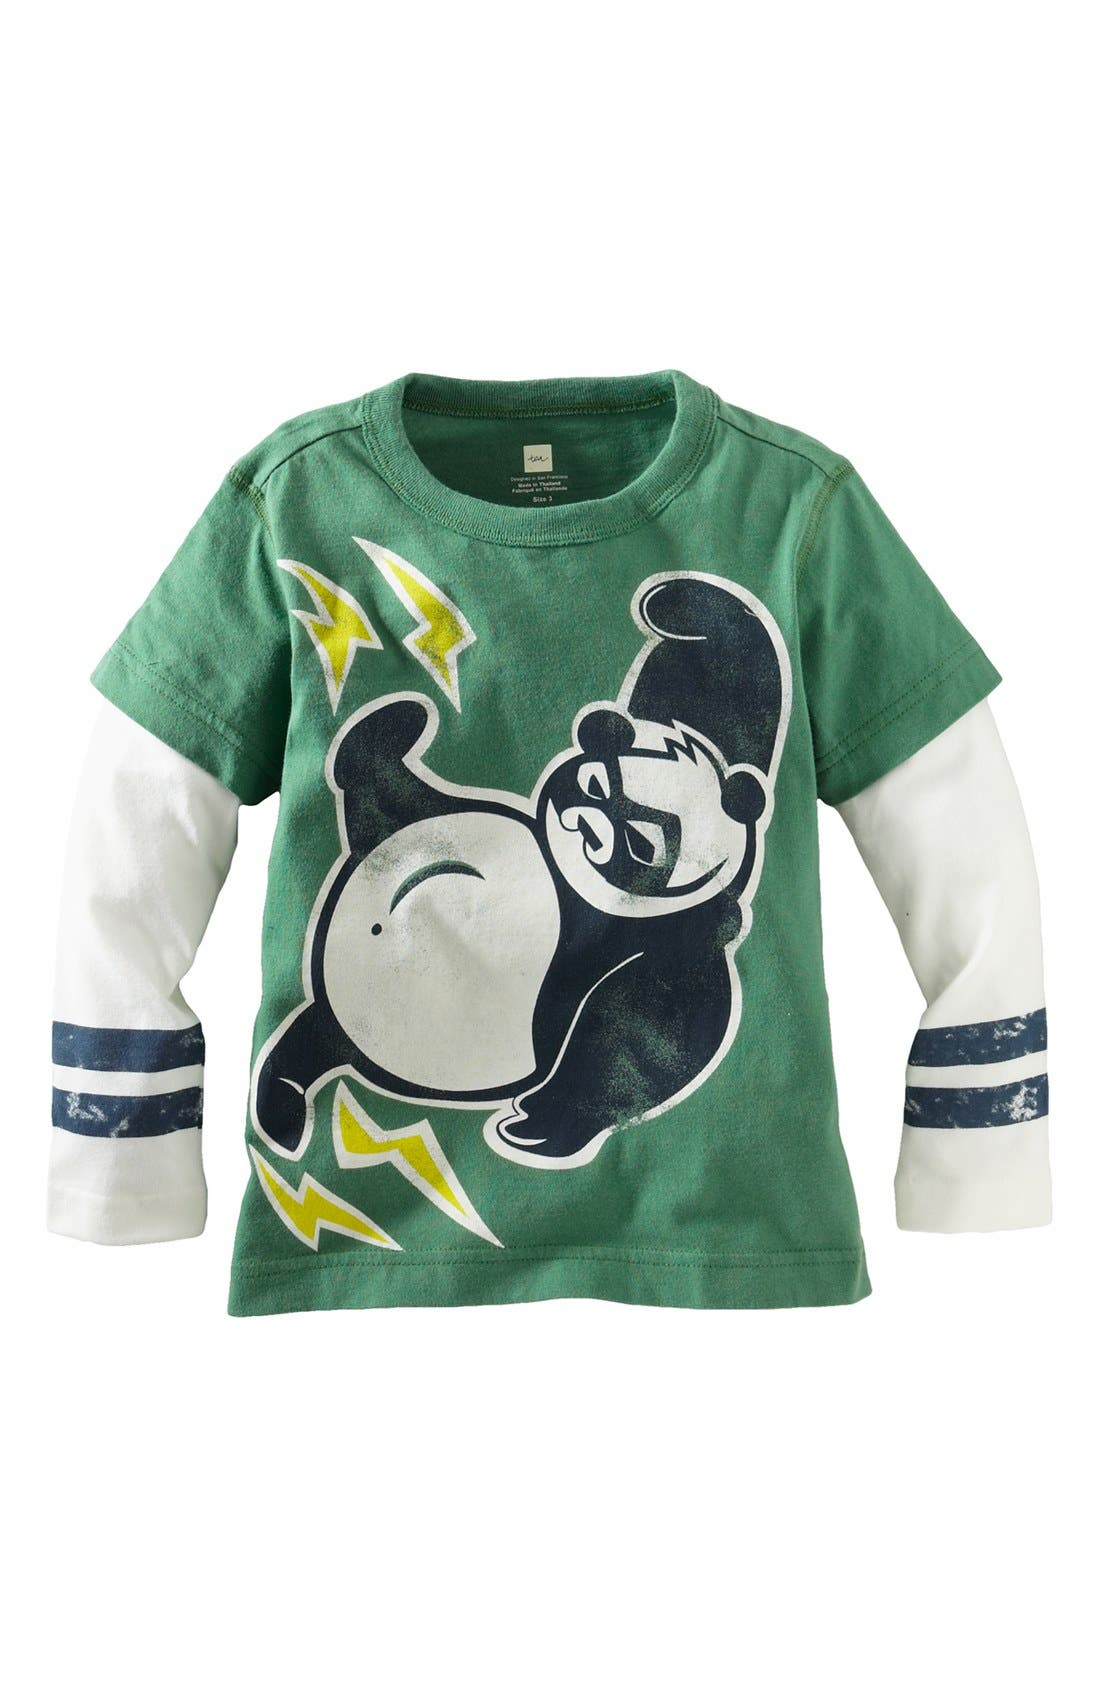 Alternate Image 1 Selected - Tea Collection 'Super Panda Double Decker' T-Shirt (Toddler Boys)